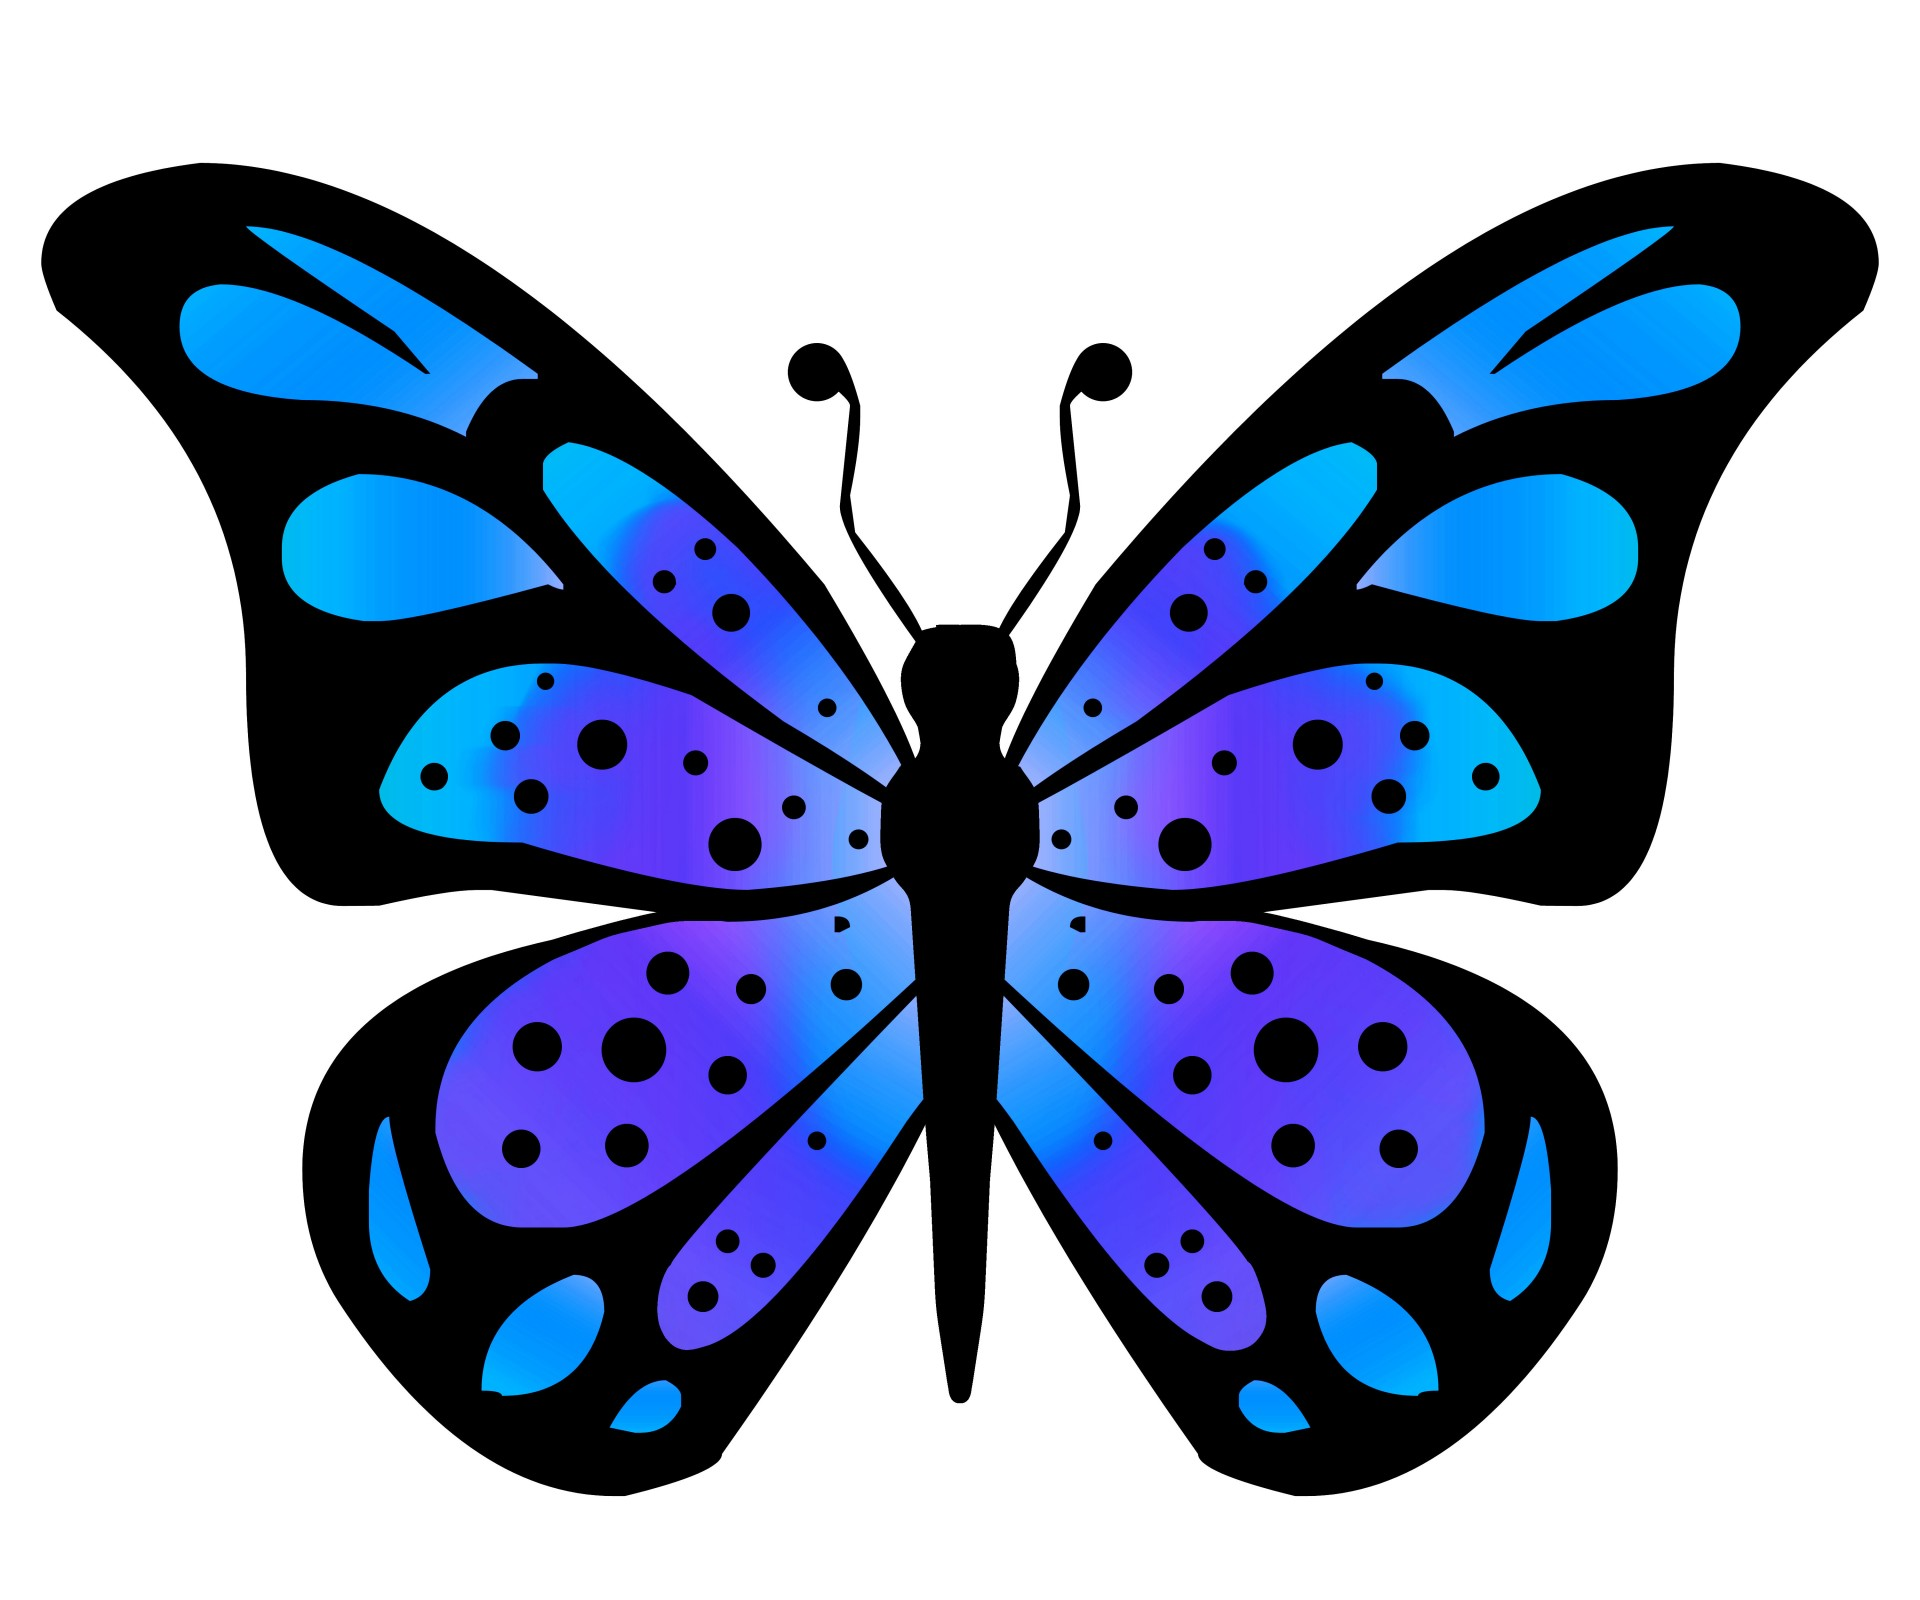 Clipart Butterfly 3 .-Clipart Butterfly 3 .-10